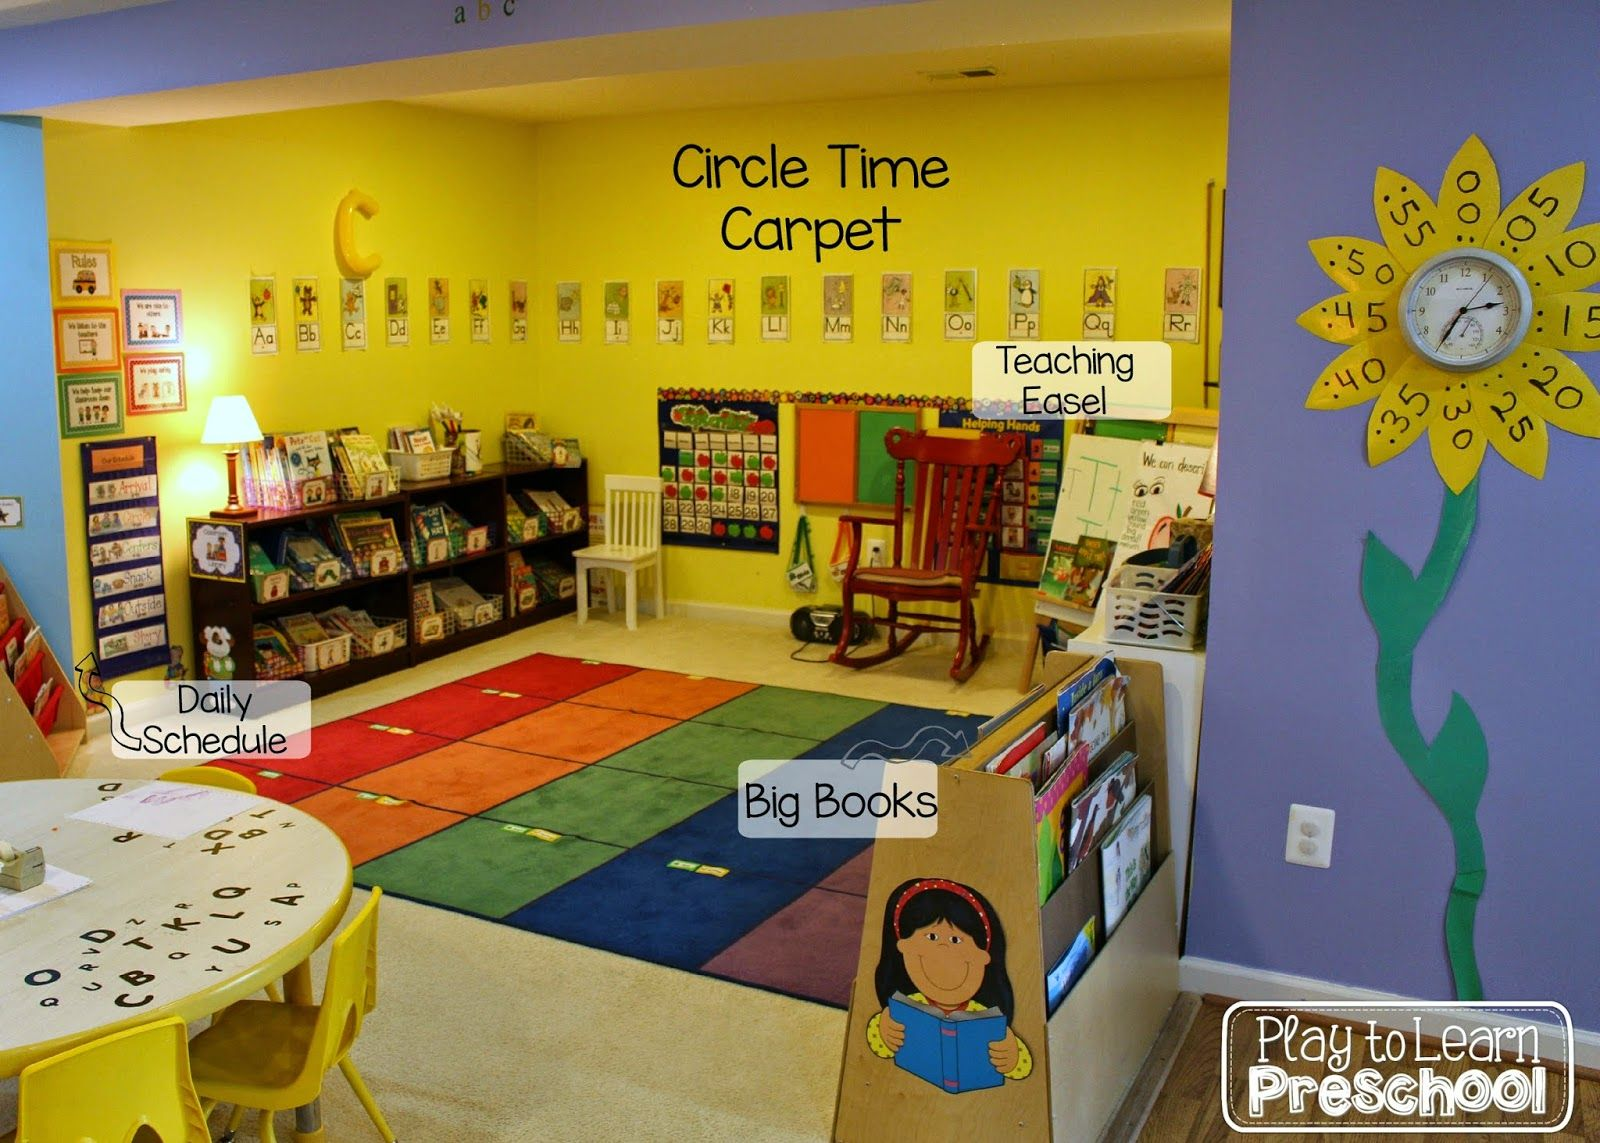 Best paint colors for preschool classrooms - A Tour Of The Classroom At Play To Learn Preschool